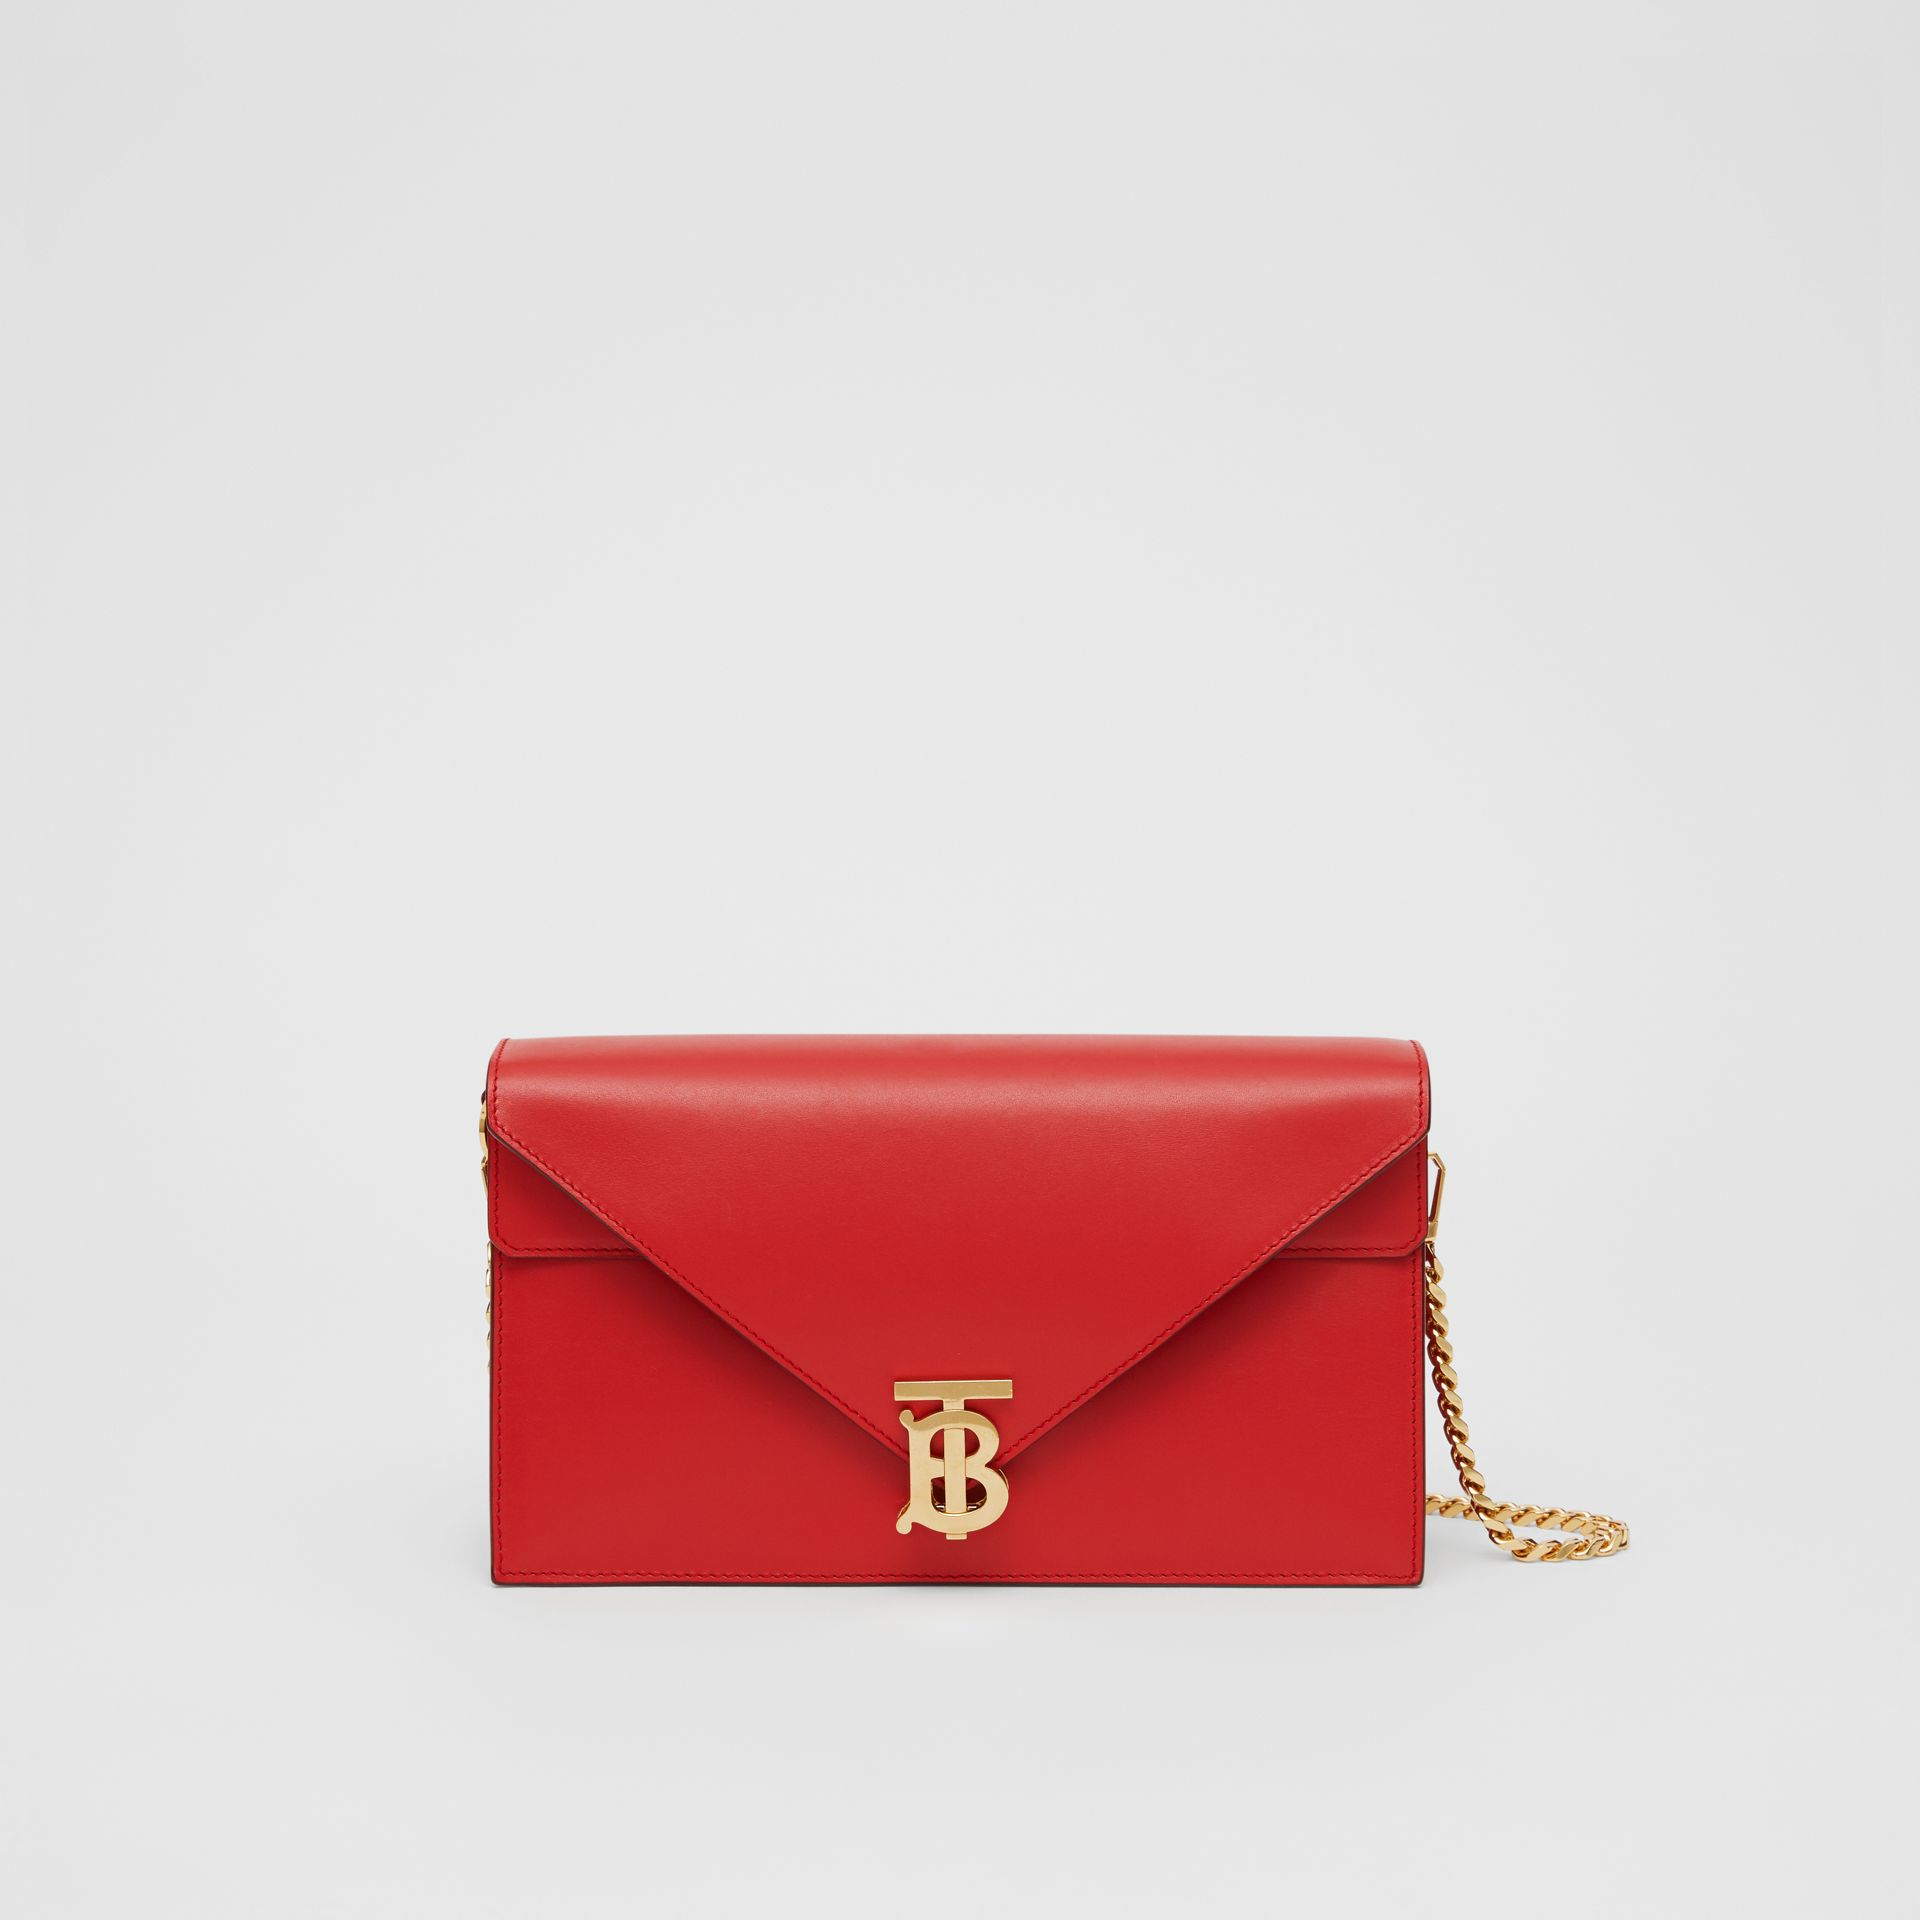 Small Leather TB Envelope Clutch in Bright Military Red - Women | Burberry United States - gallery image 0